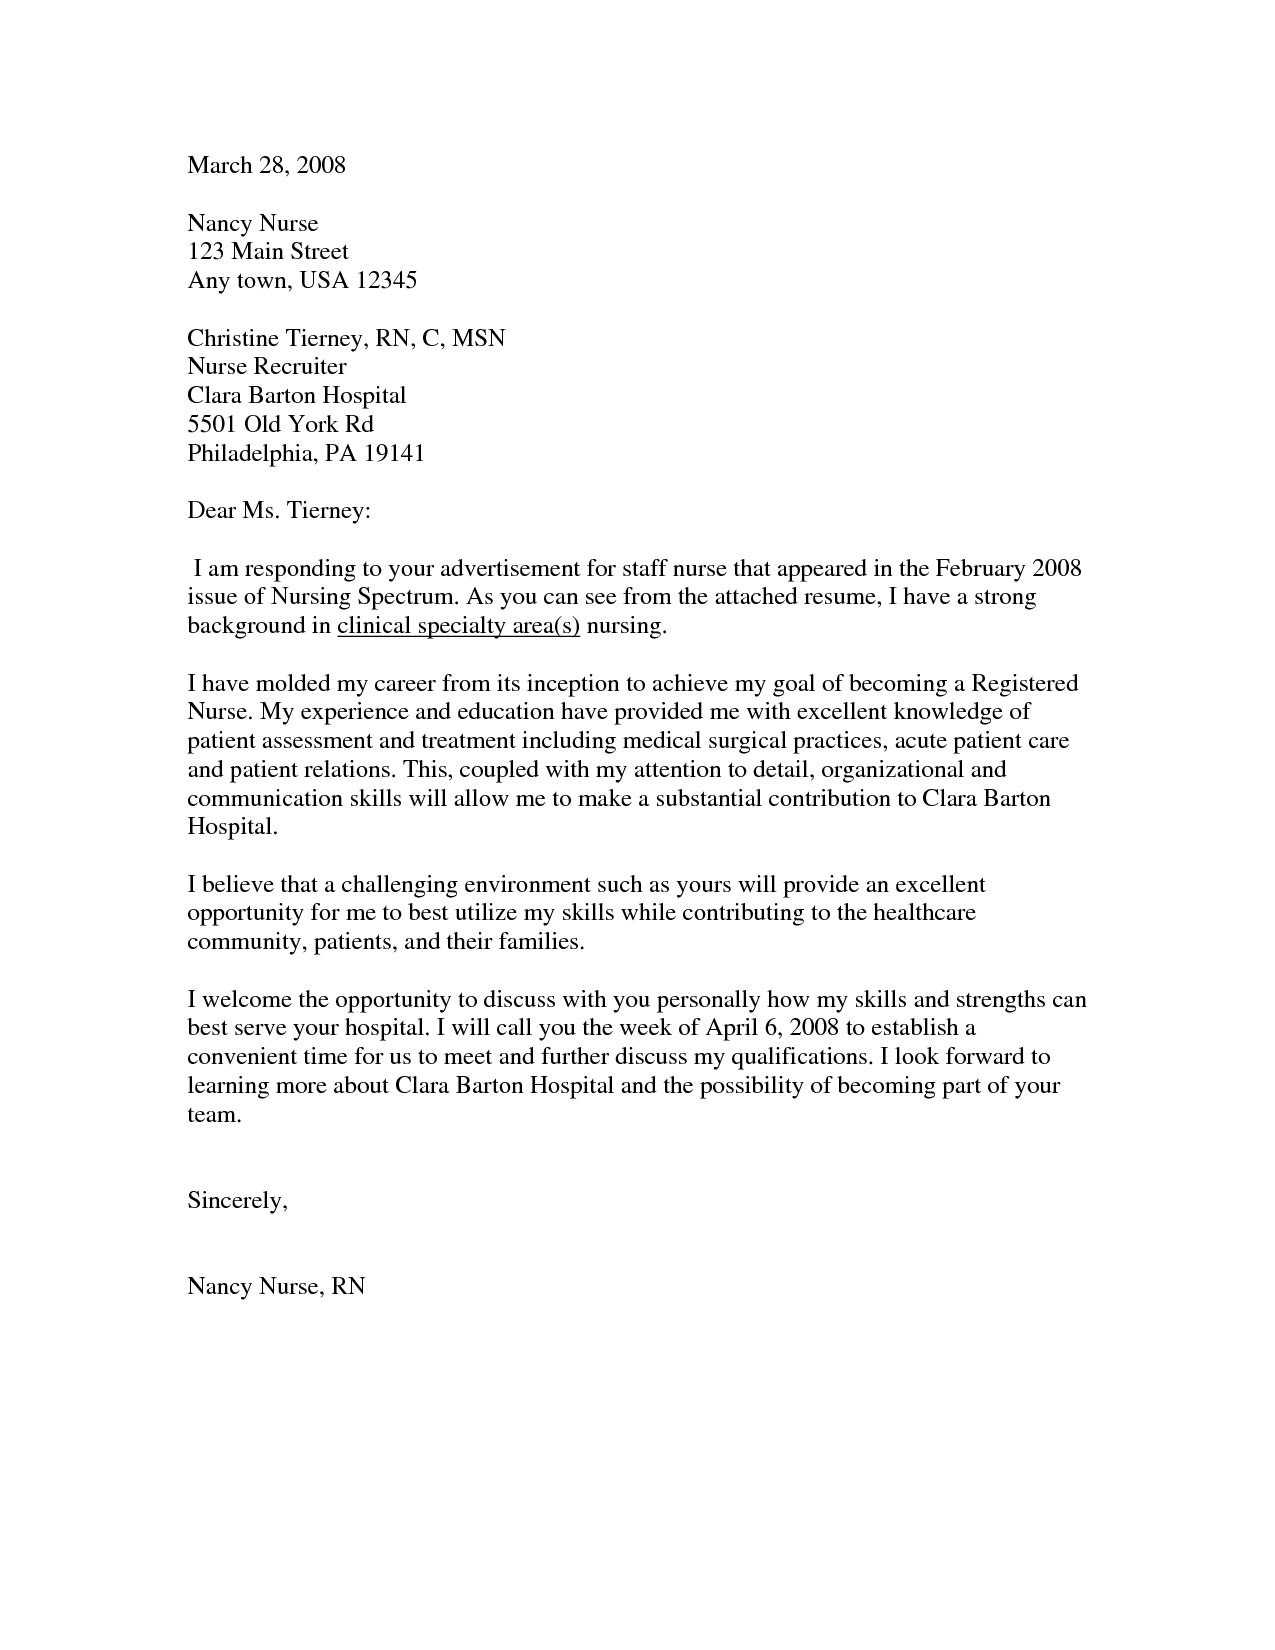 New Grad Nurse Cover Letter Example Nursing Cover